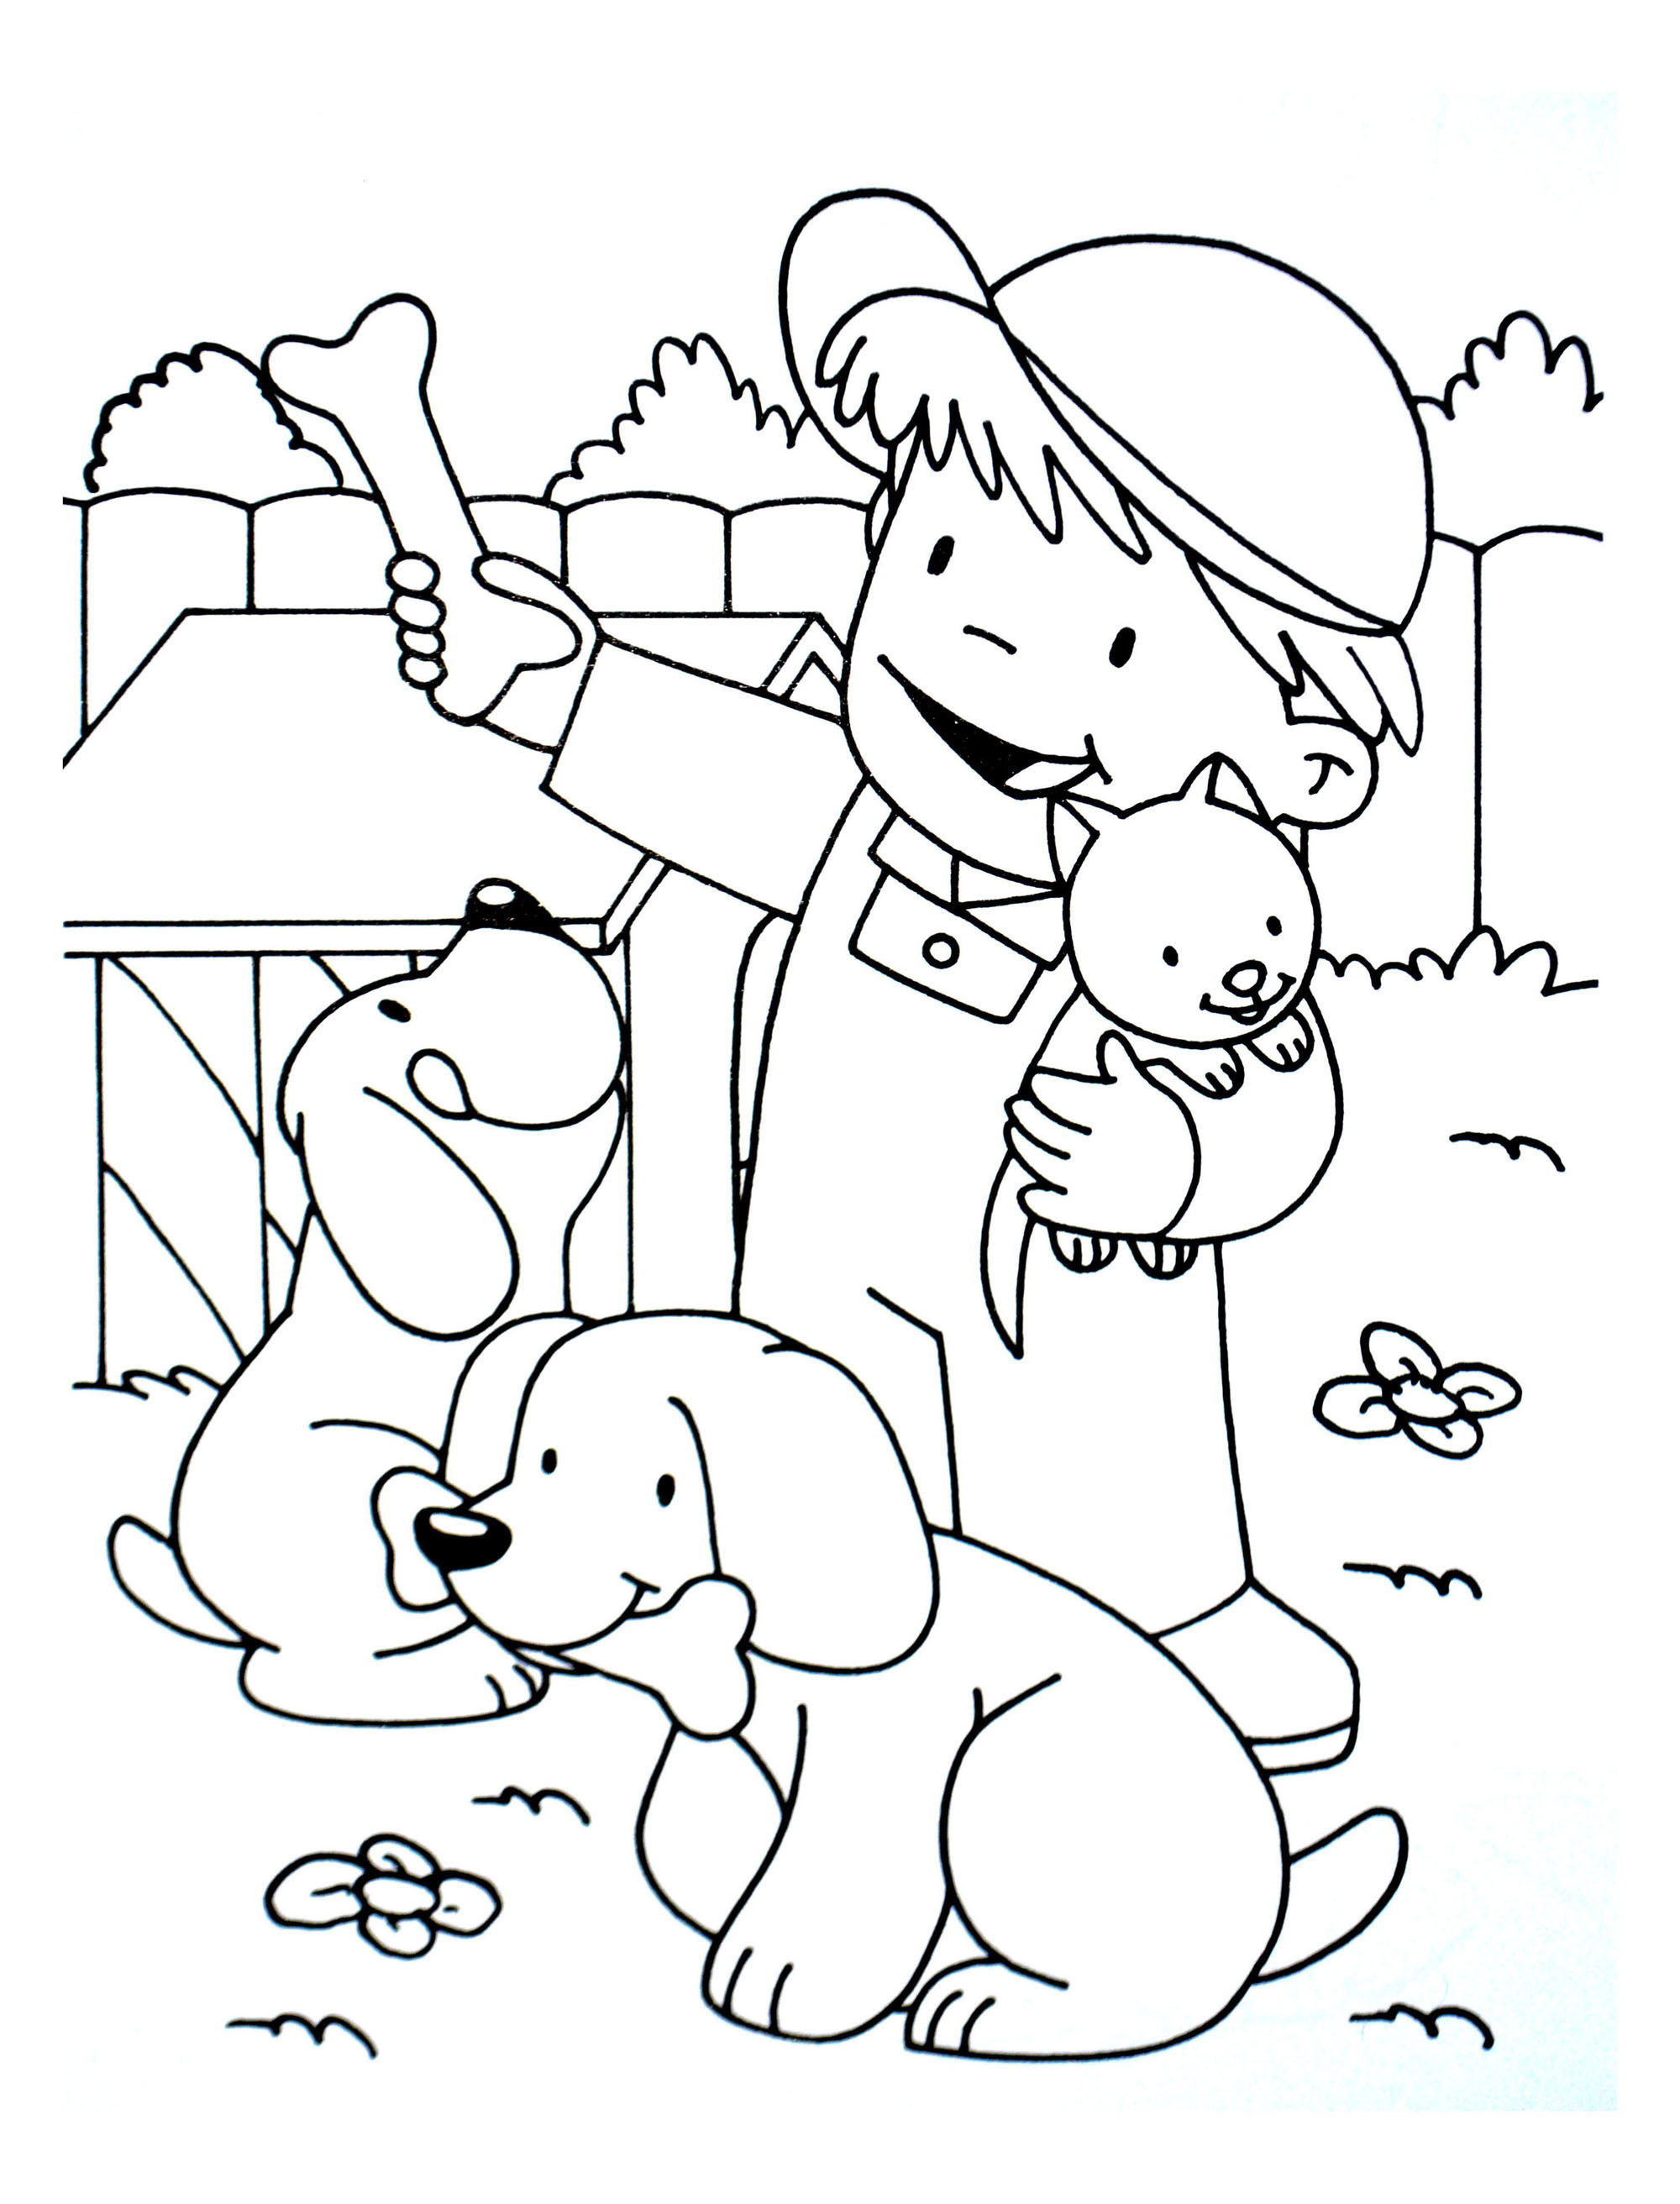 Kid With A Cat And Two Dogs